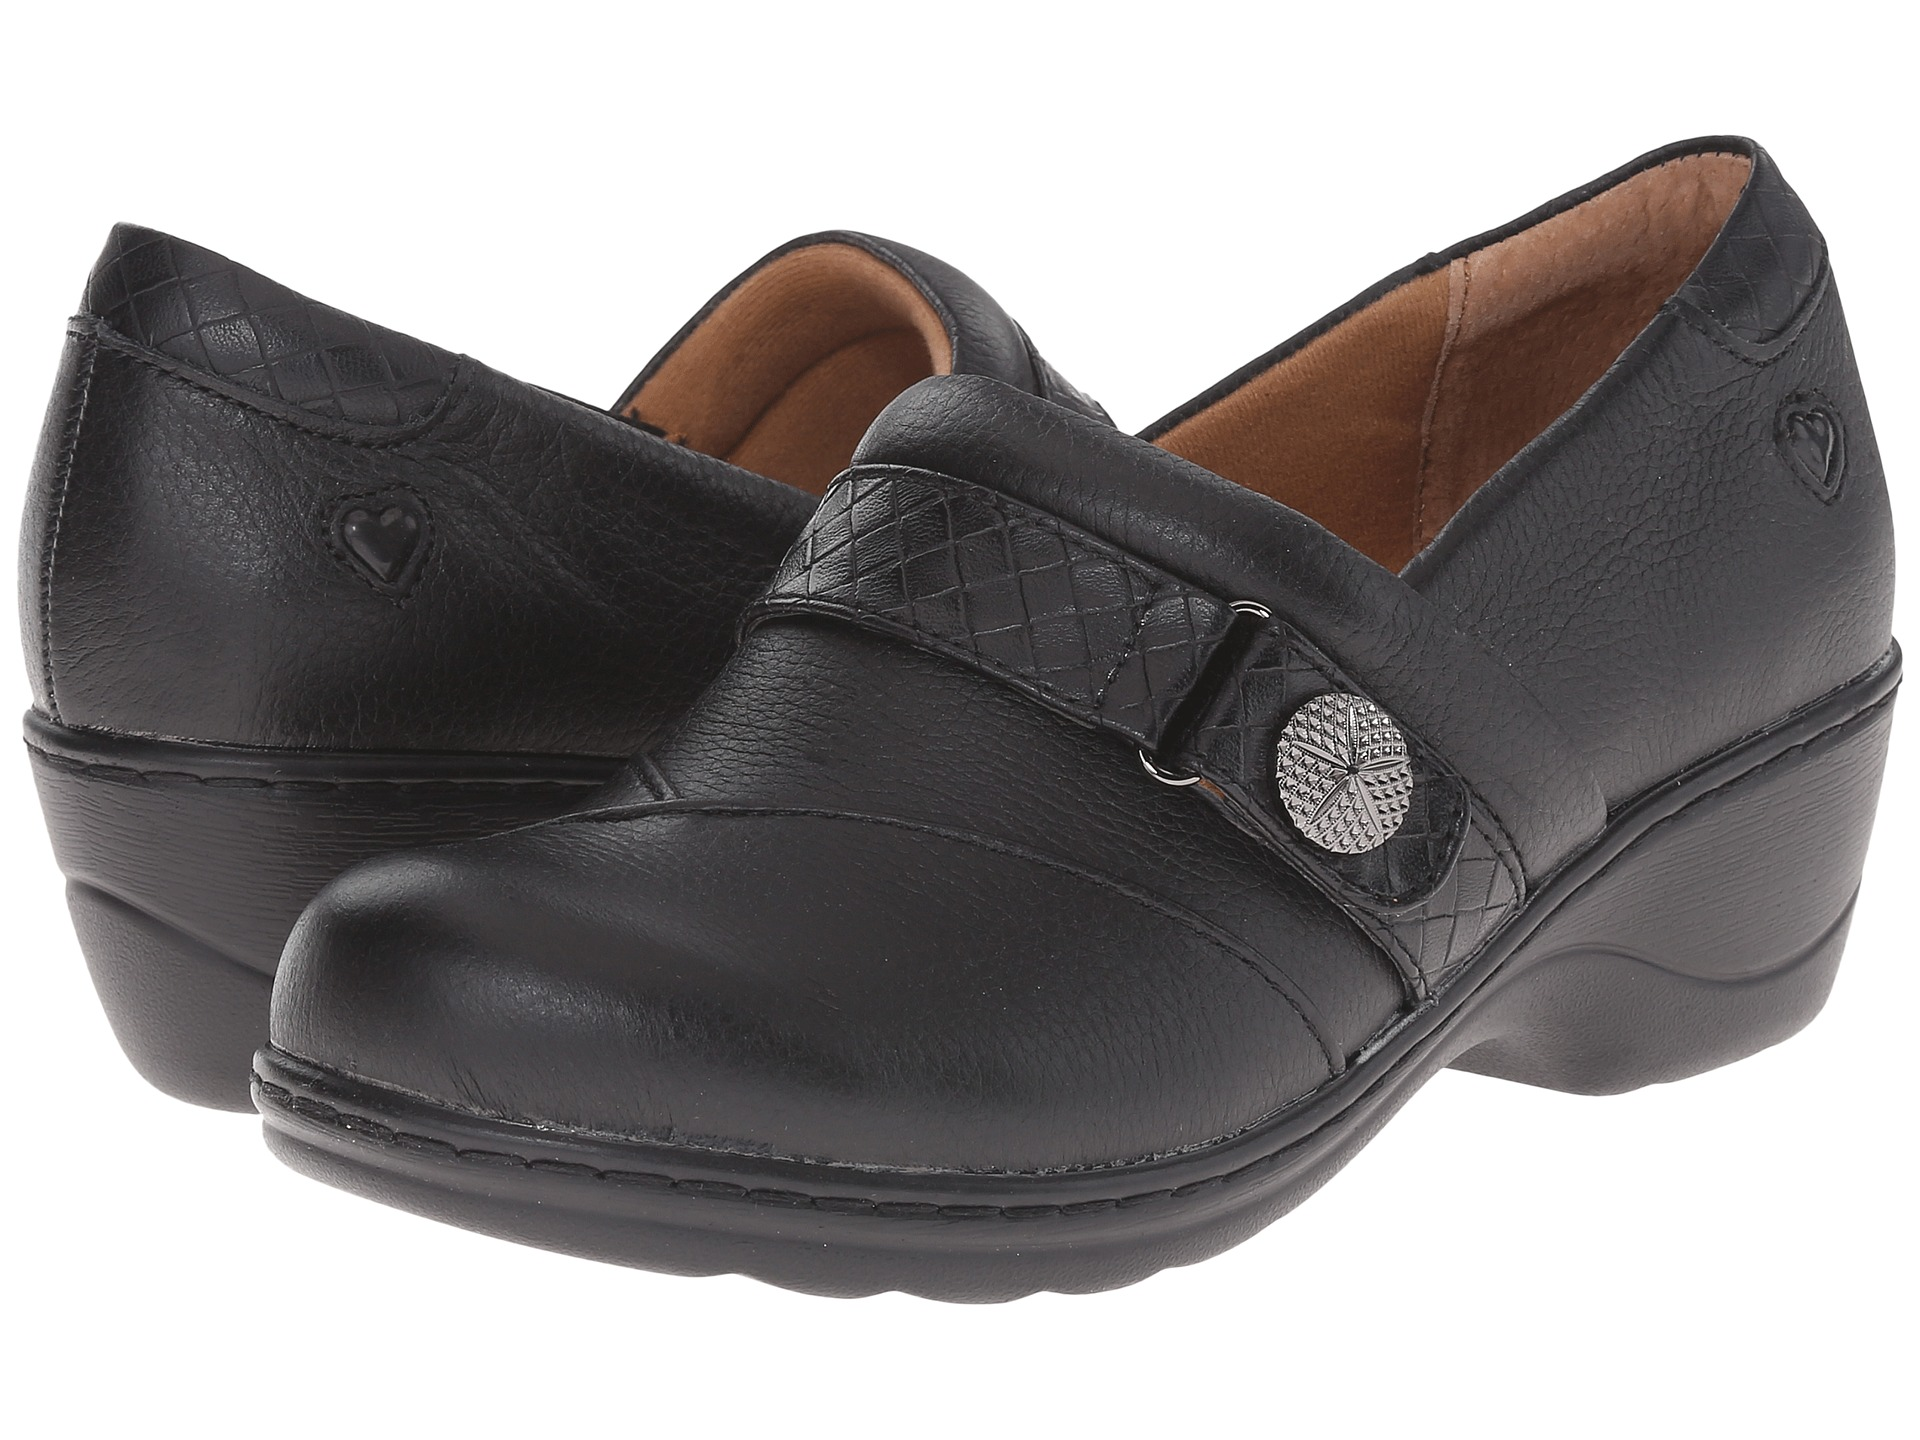 Zappos Wide Toe Box Shoes